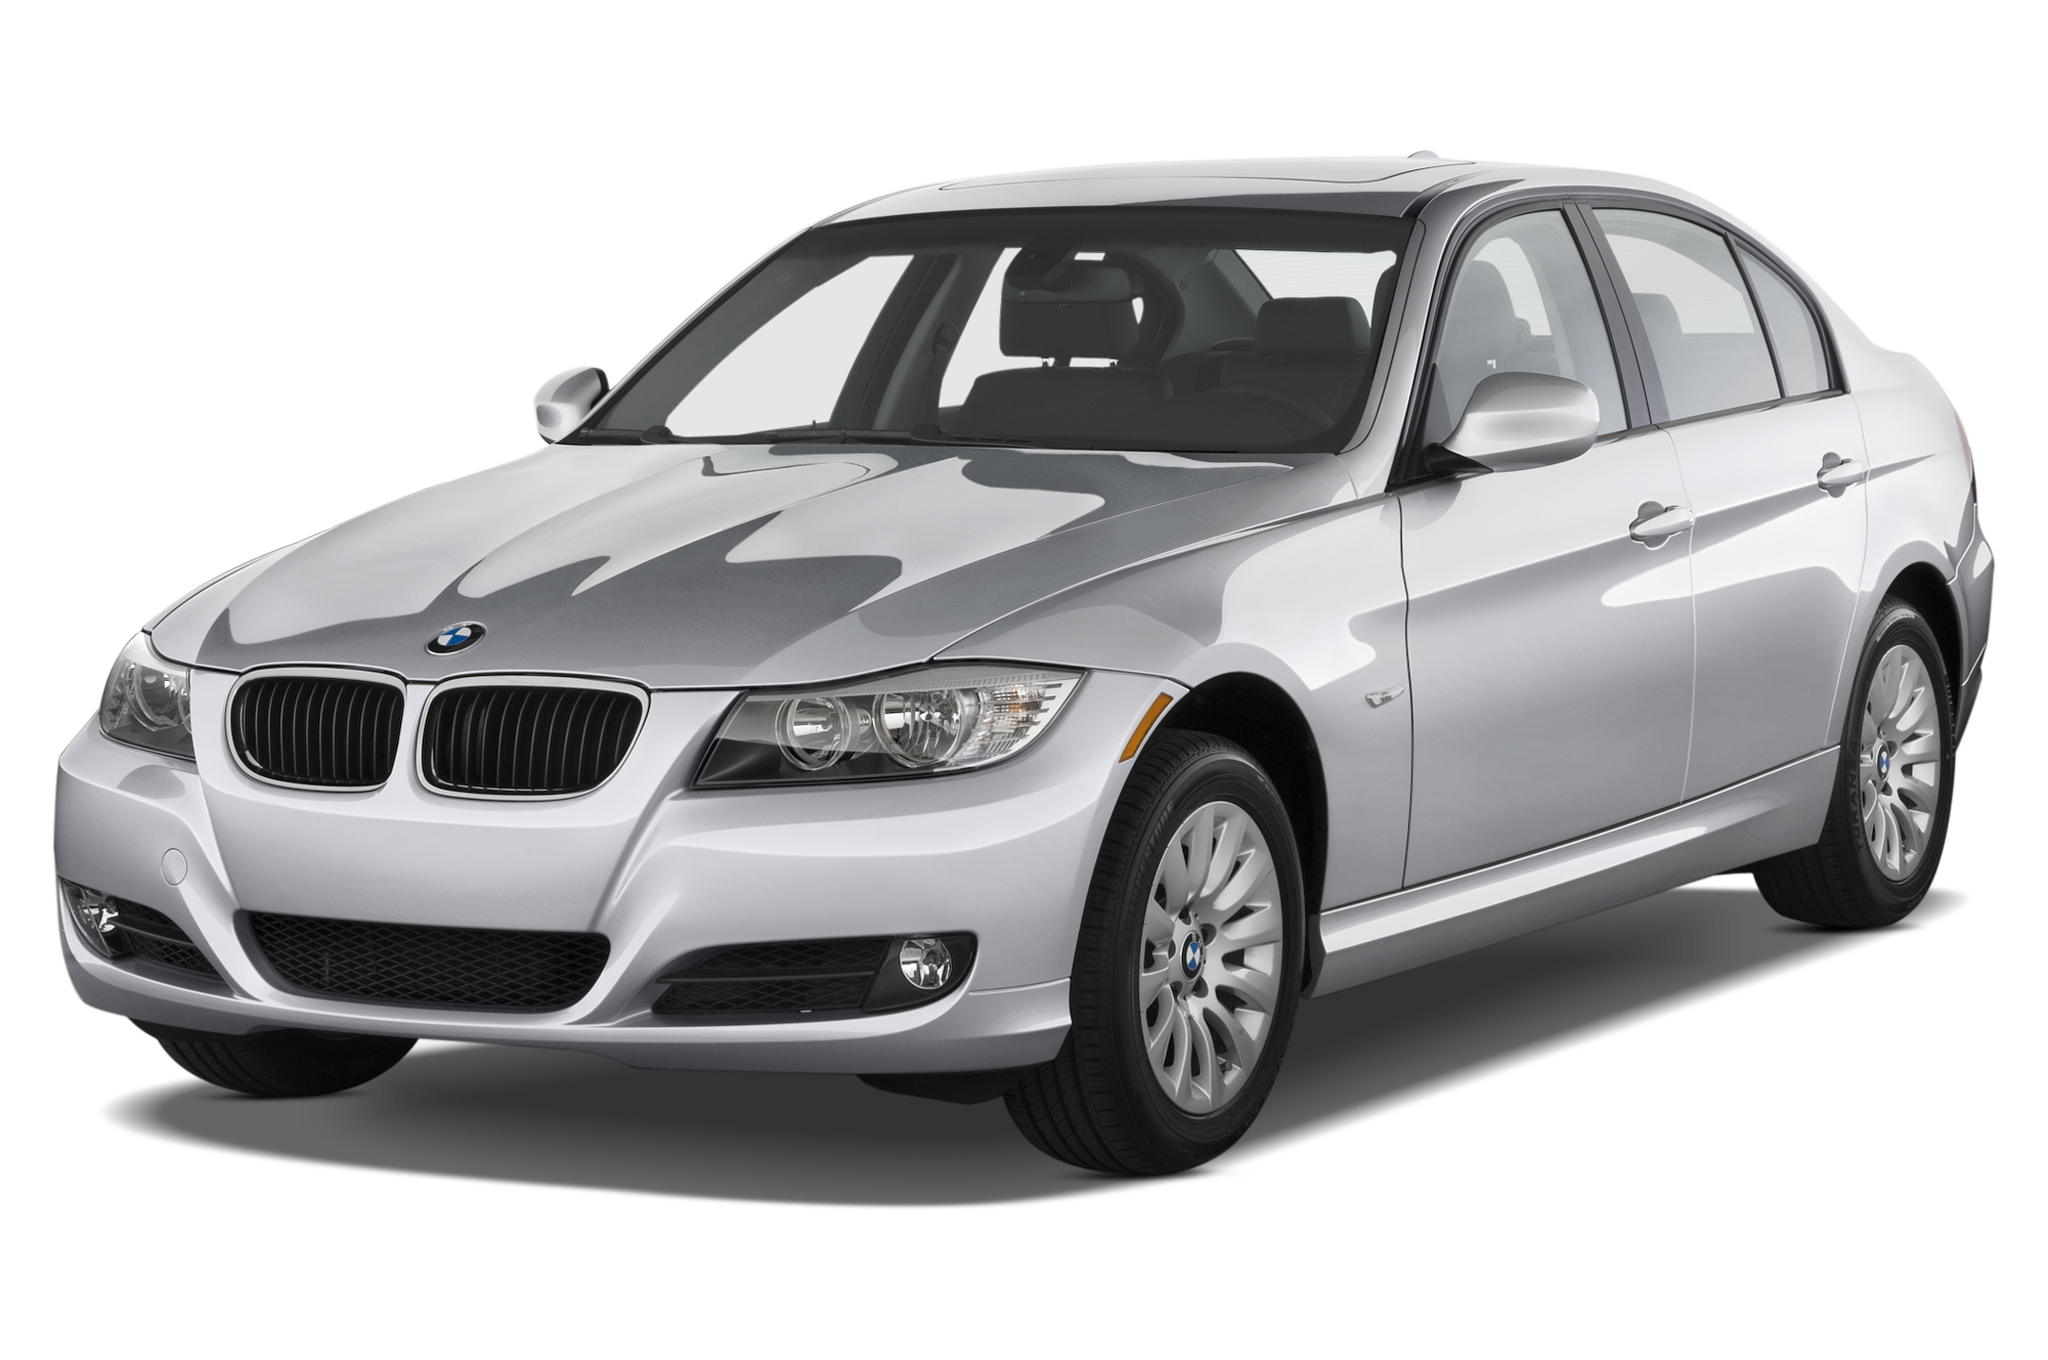 bmw 328i vs 335d gasoline beats diesel. Black Bedroom Furniture Sets. Home Design Ideas